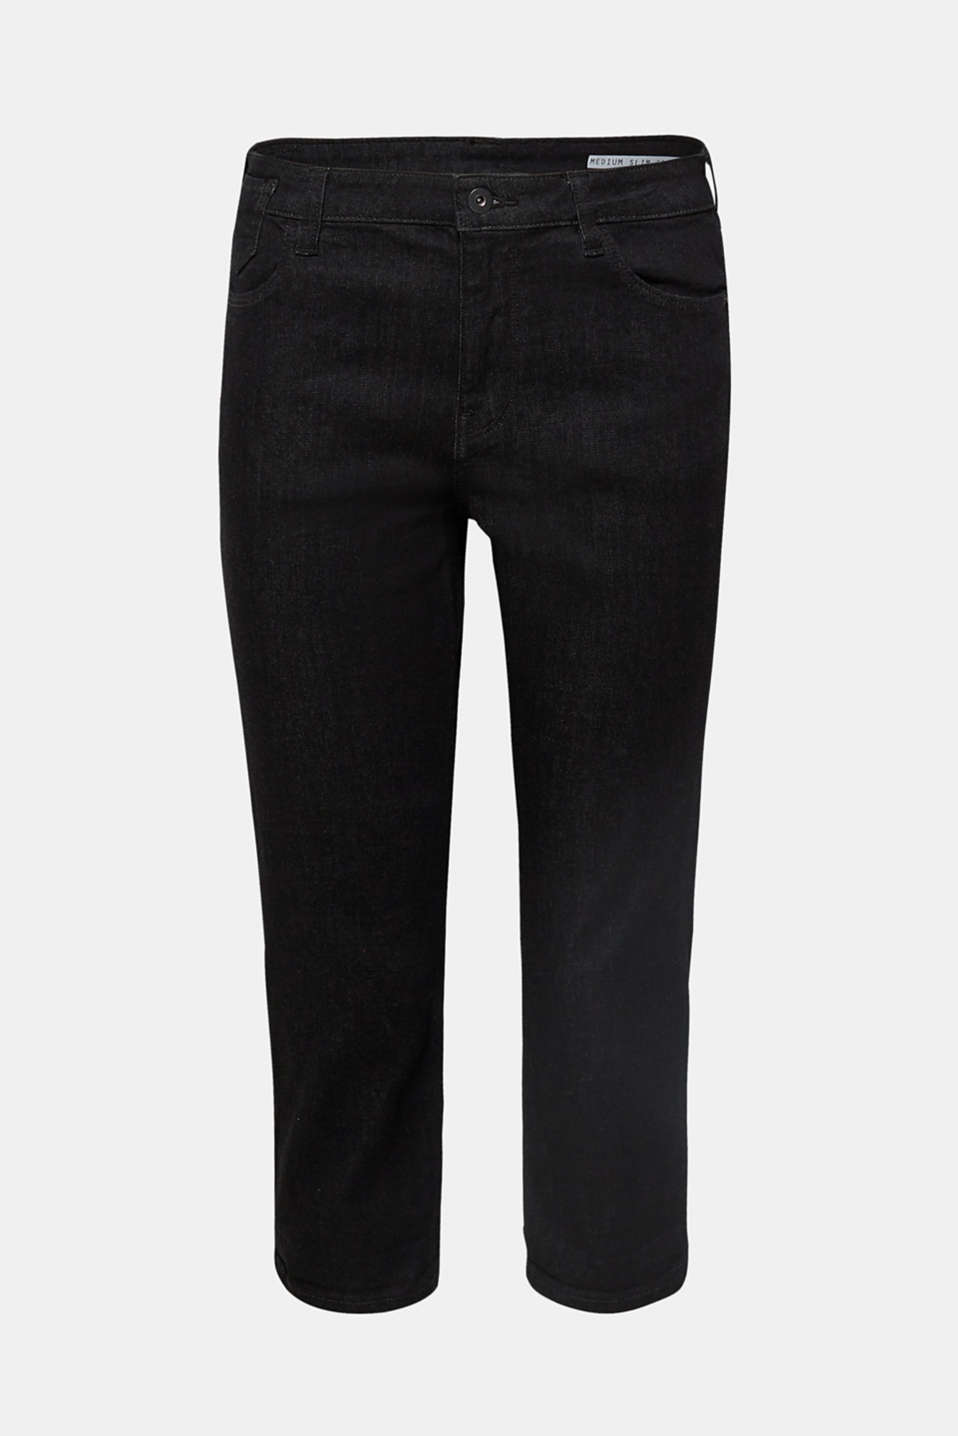 Pants denim, BLACK RINSE, detail image number 7